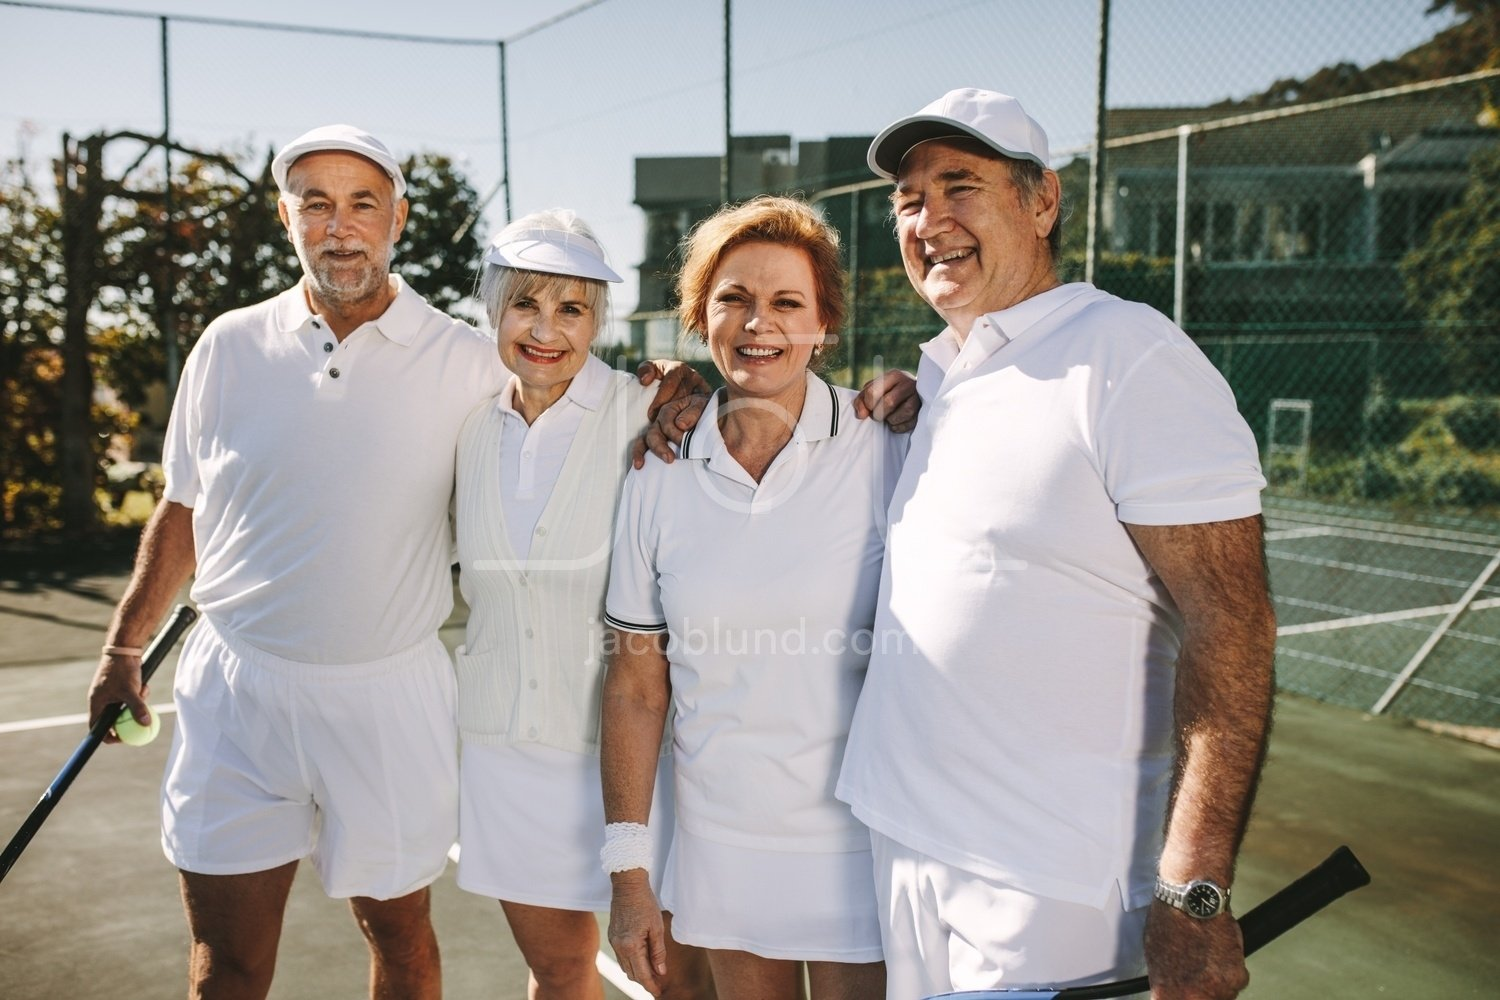 Senior Couples In Tennis Wear Standing In A Tennis Court Jacob Lund Photography Store Premium Stock Photo